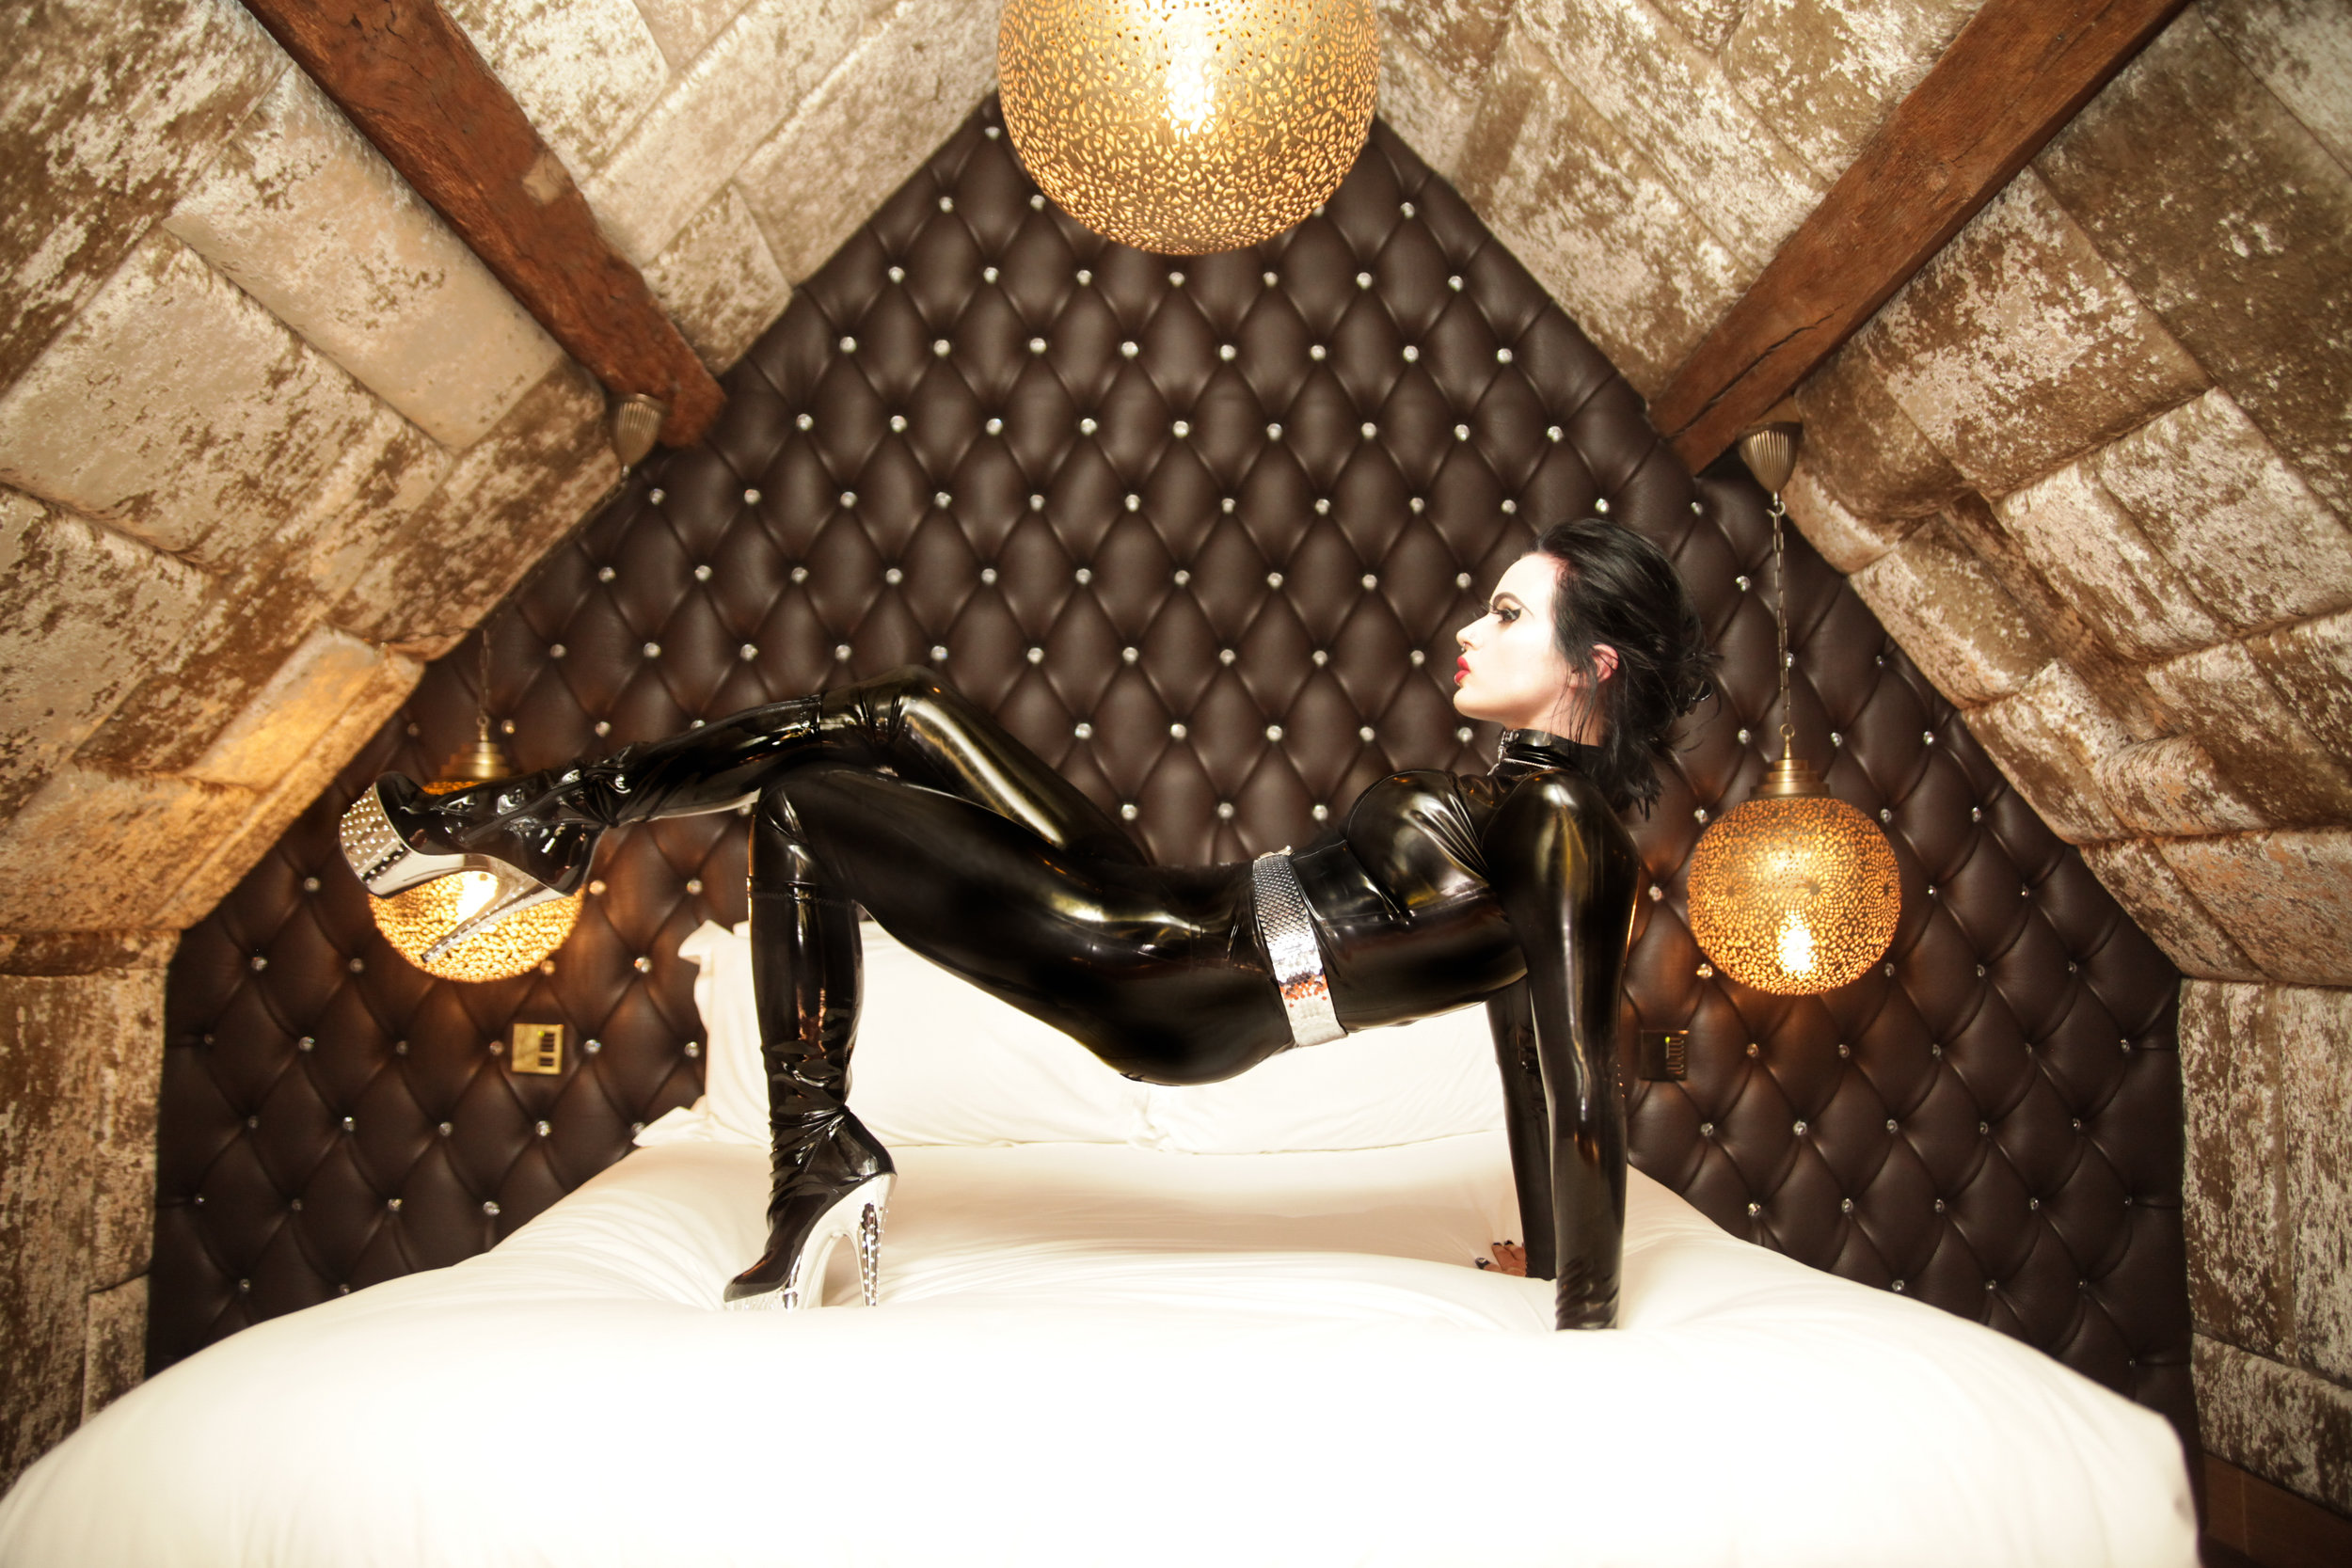 BDSM mistress central London